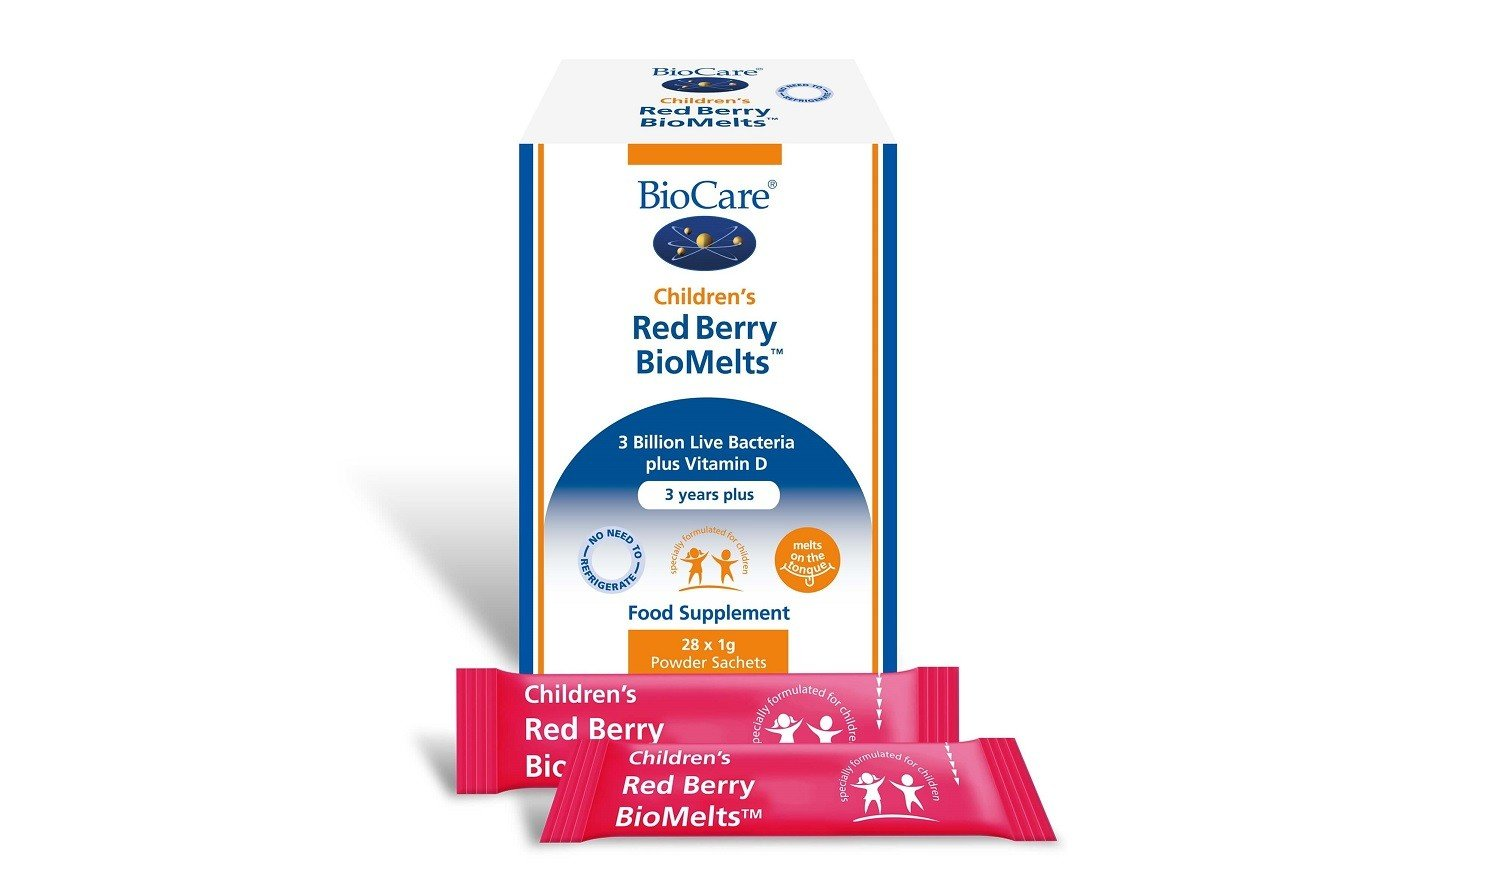 Children's Red Berry BioMelts